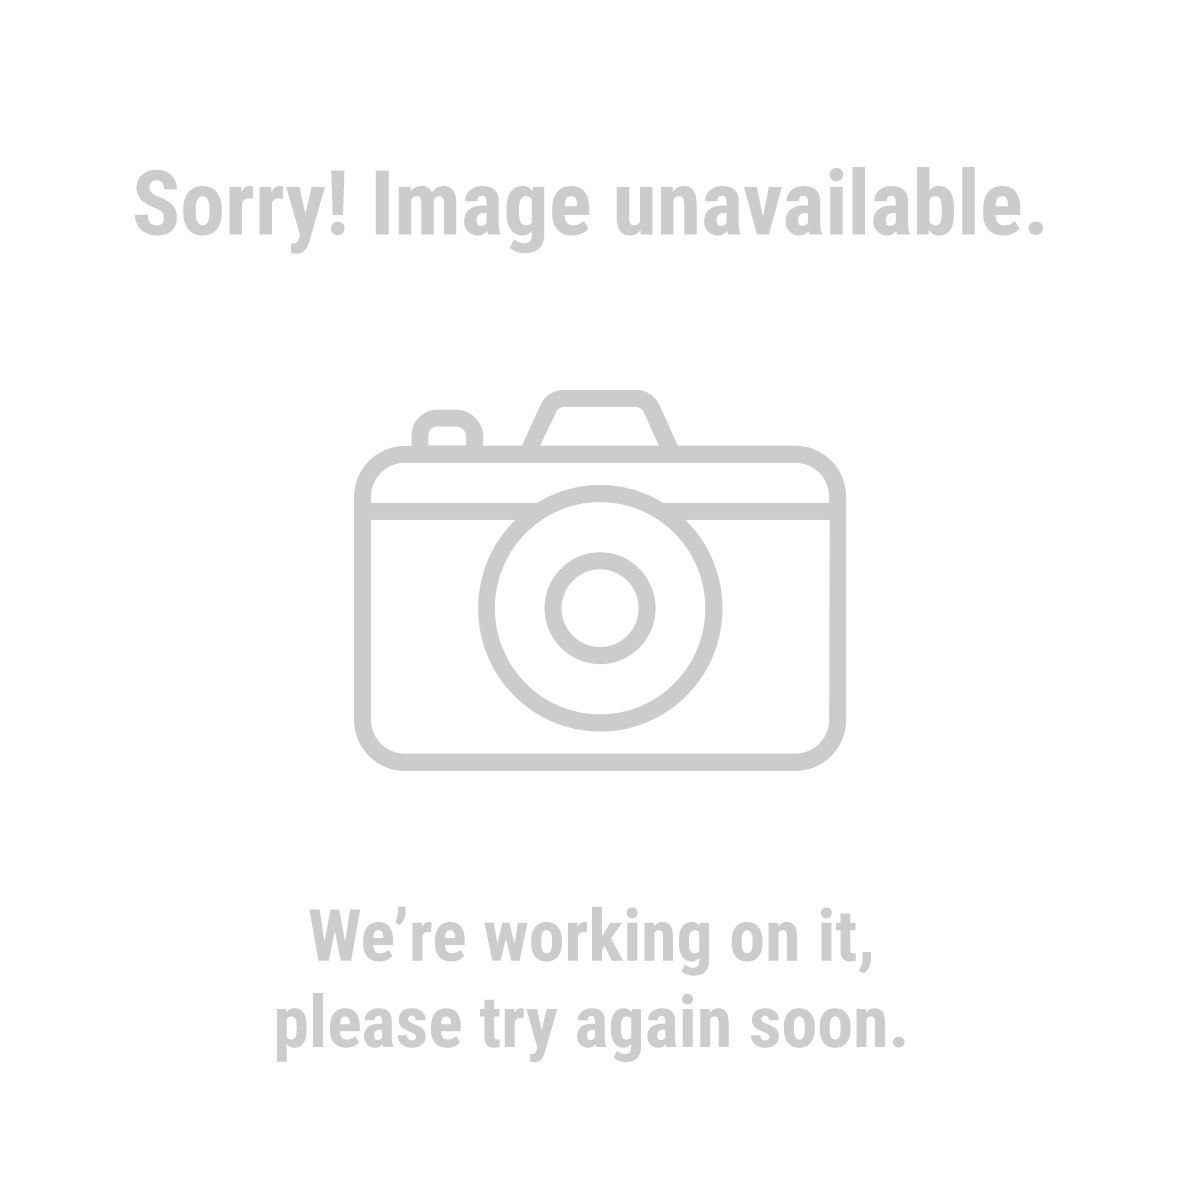 Harbor Freight Hercules Miter Saw Coupon